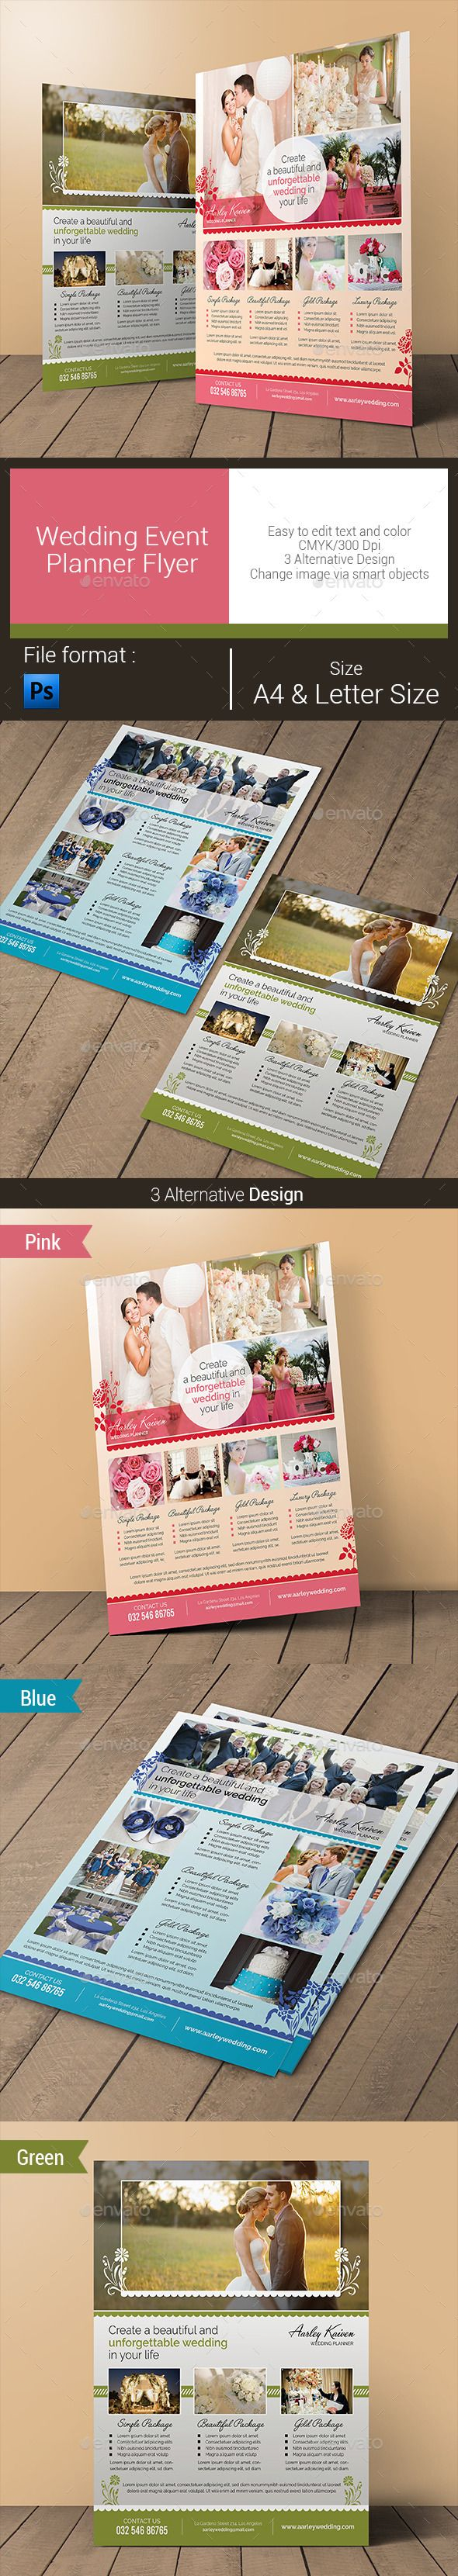 wedding event planner flyer corporate flyers flyer templates